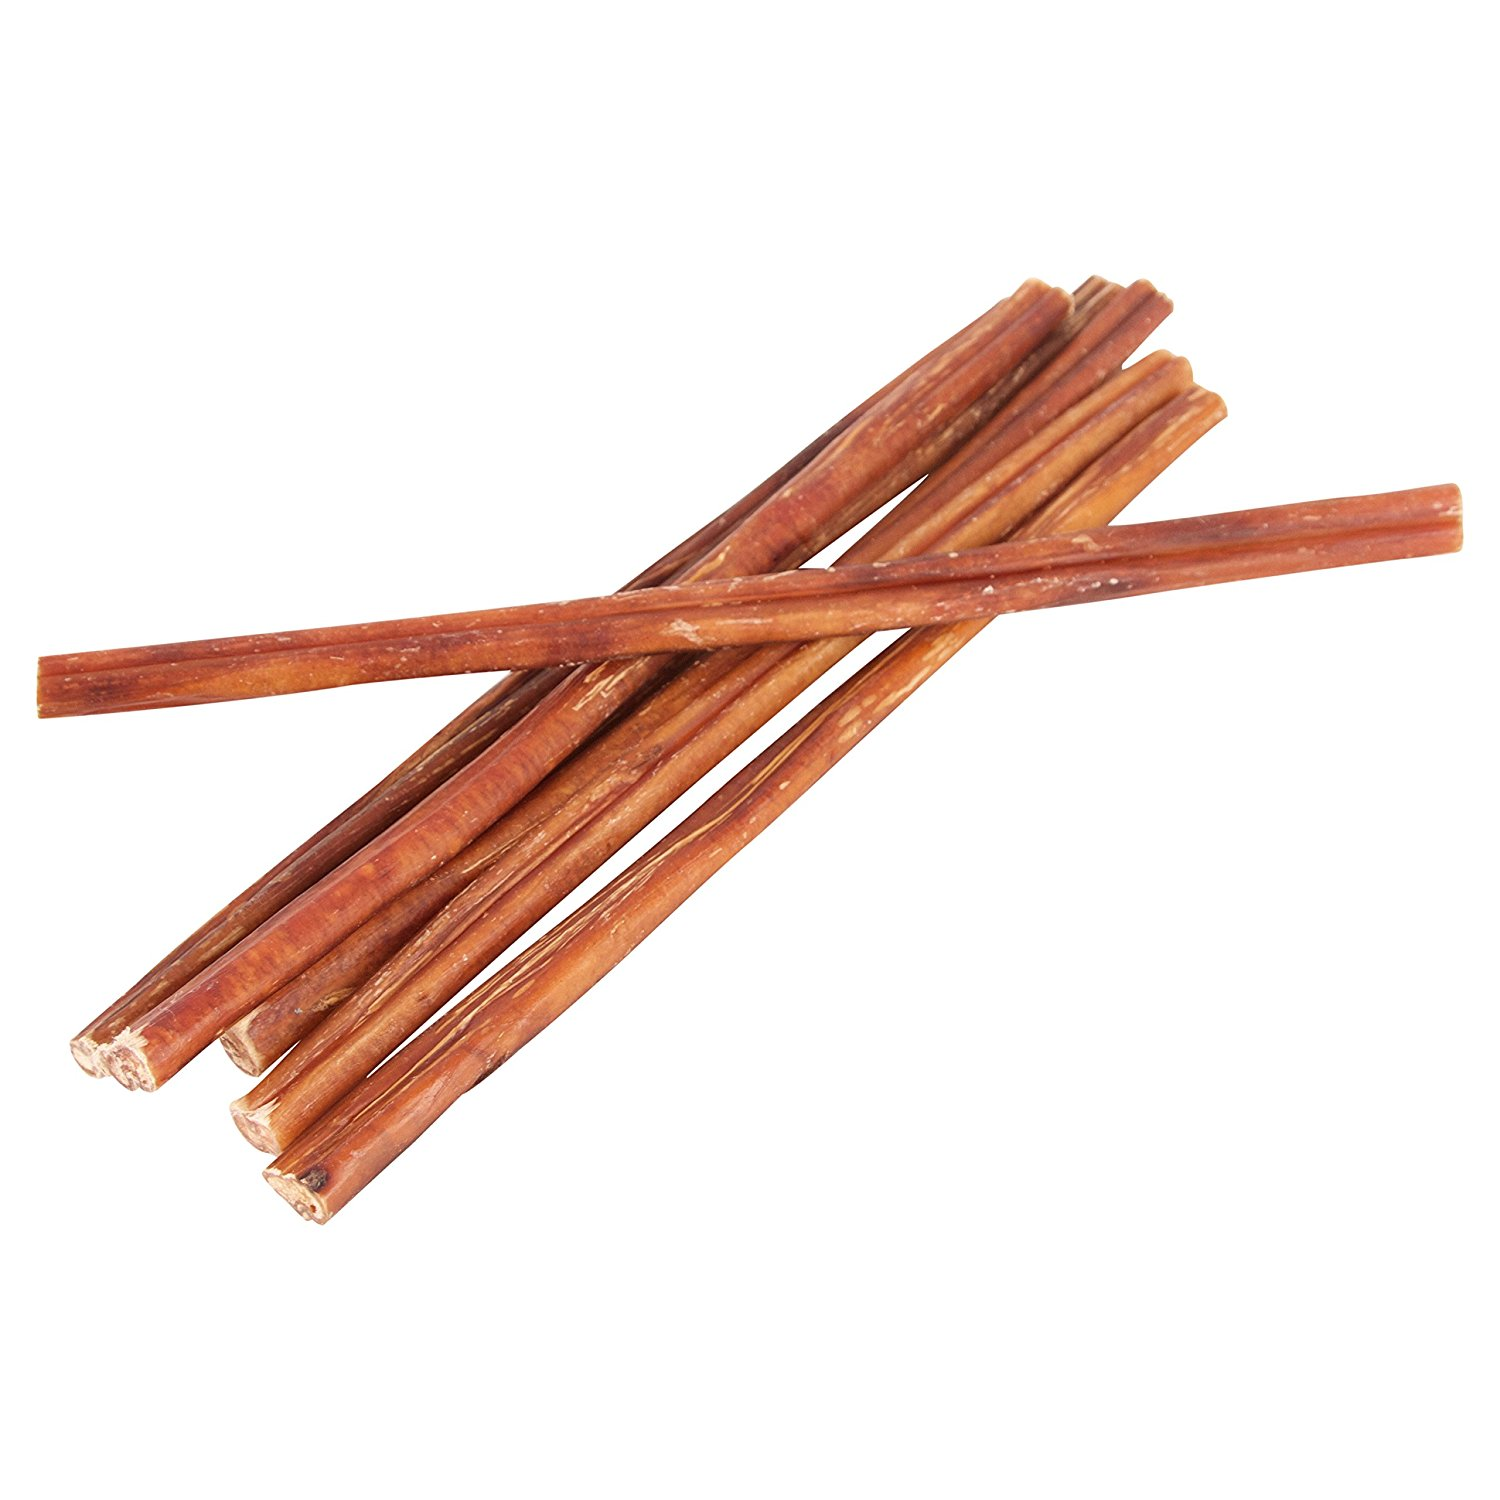 """12"""" Straight Bully Sticks for Dogs [Small Thickness] (100 Pack) - Natural Low Odor Bulk Dog Dental Treats, Best Thick Pizzle Chew Stix, 12 inch, Chemical Free"""